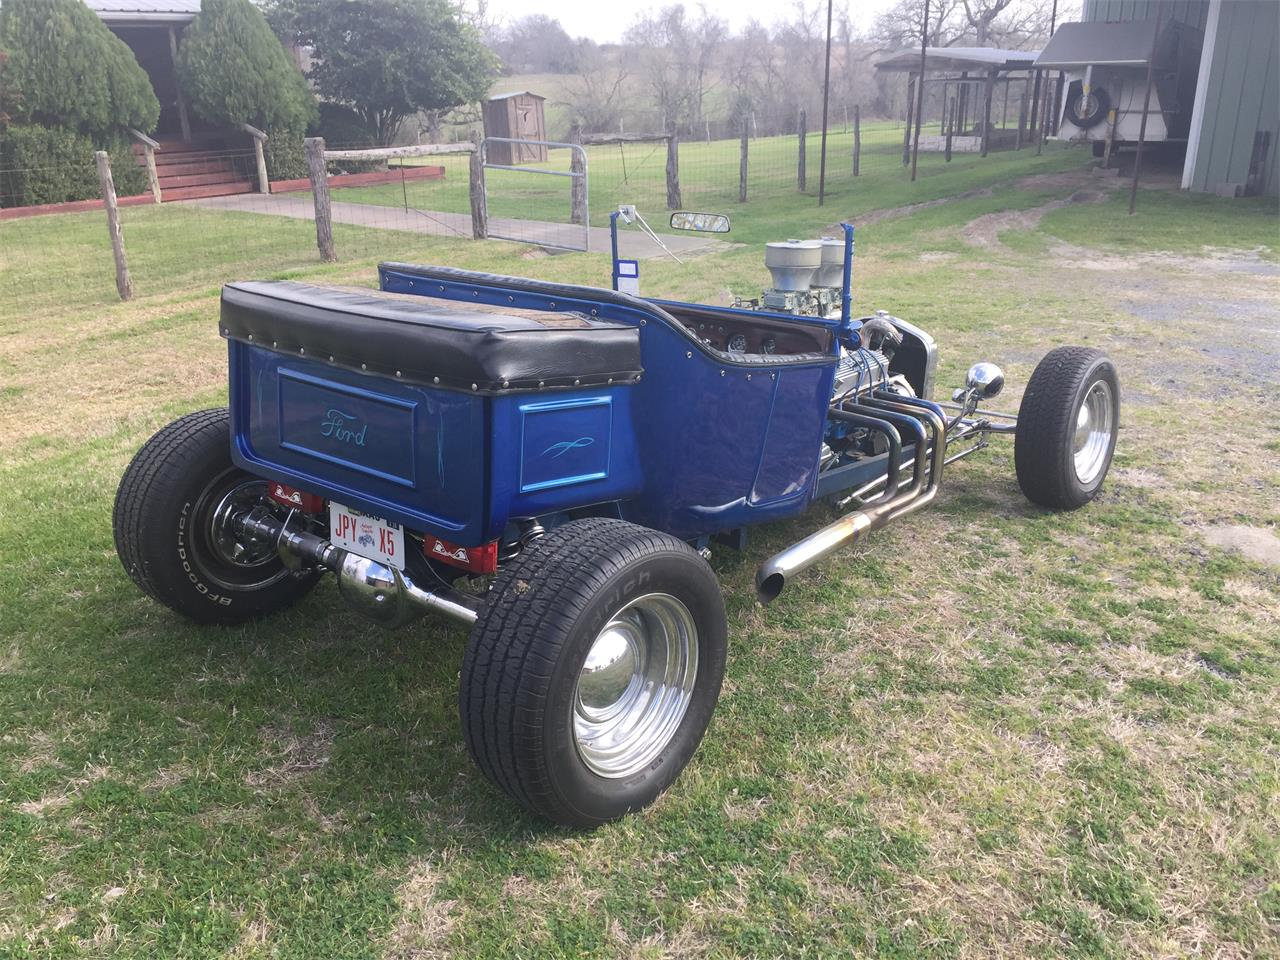 Large Picture of 1923 Ford T Bucket located in Anderson Texas - $14,000.00 Offered by a Private Seller - KKTF